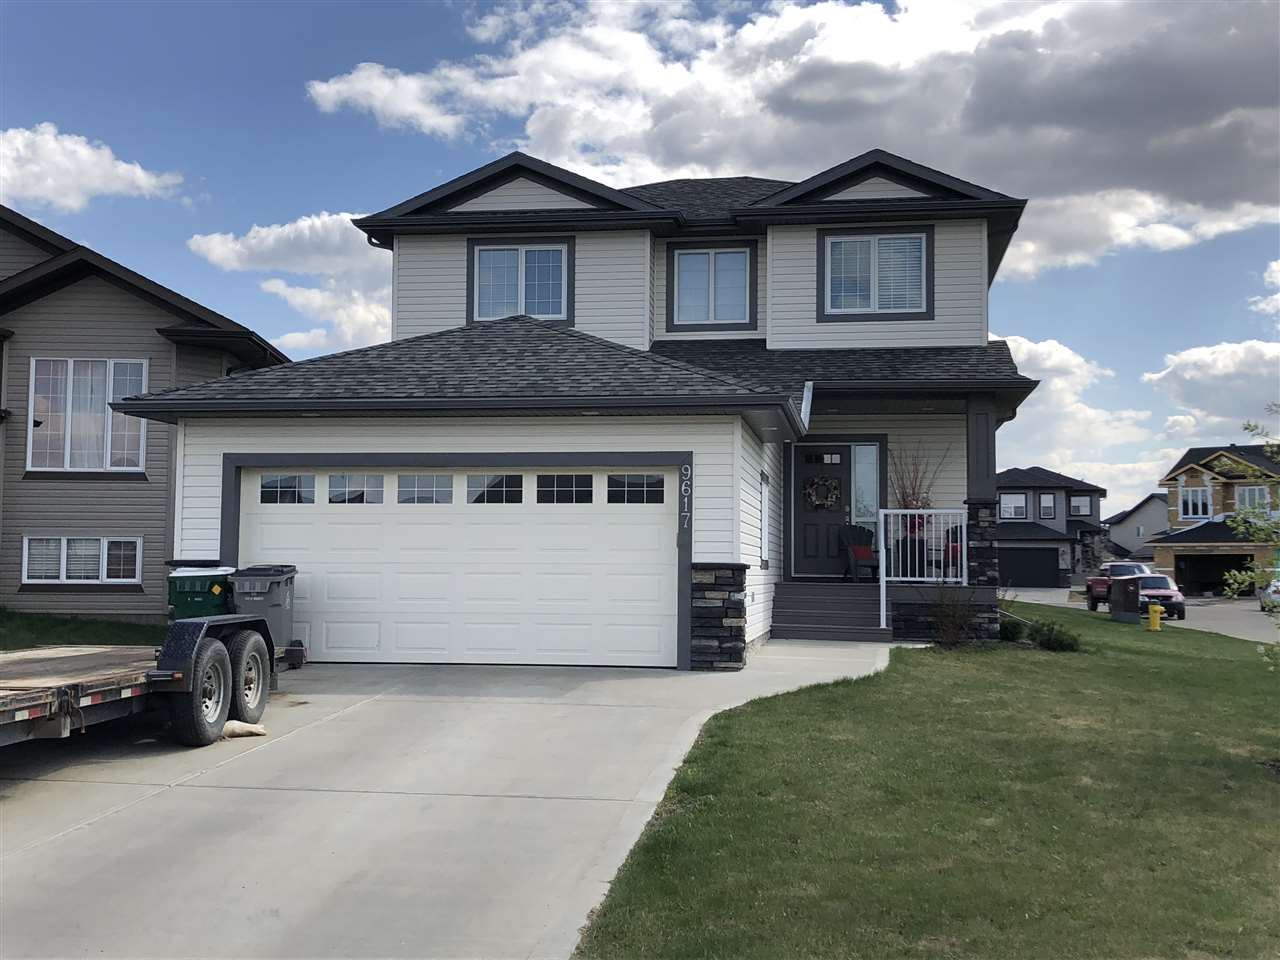 Main Photo: 9617 84A Avenue: Morinville House for sale : MLS®# E4112567